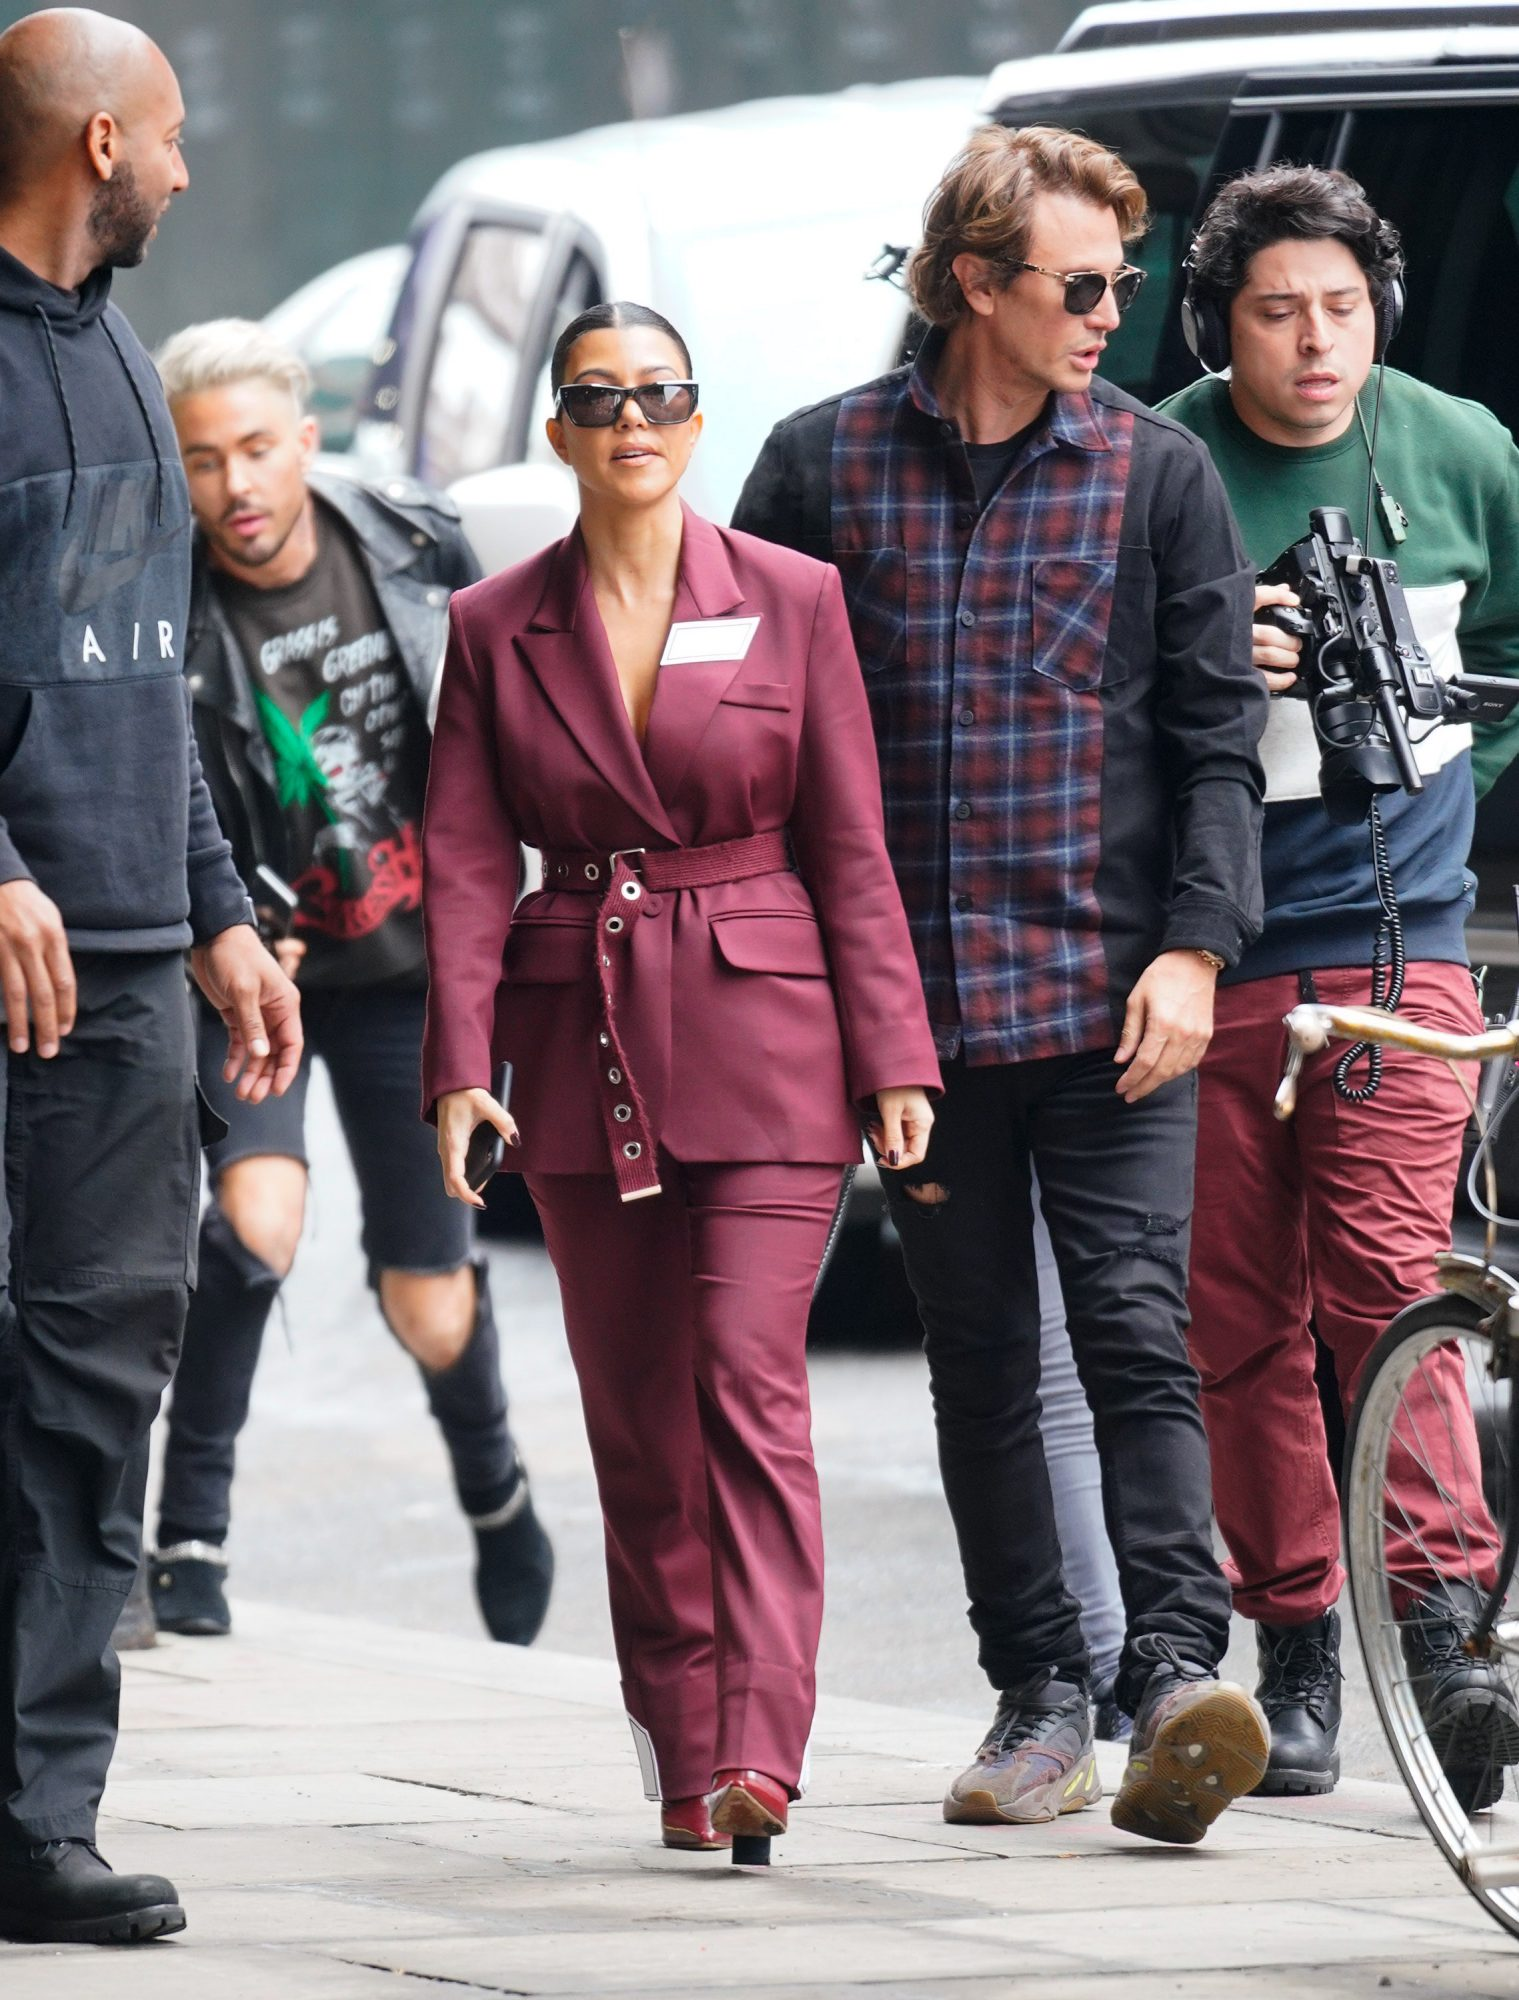 Kourtney Kardashian Wearing a Burgundy Suit with Matching Boots